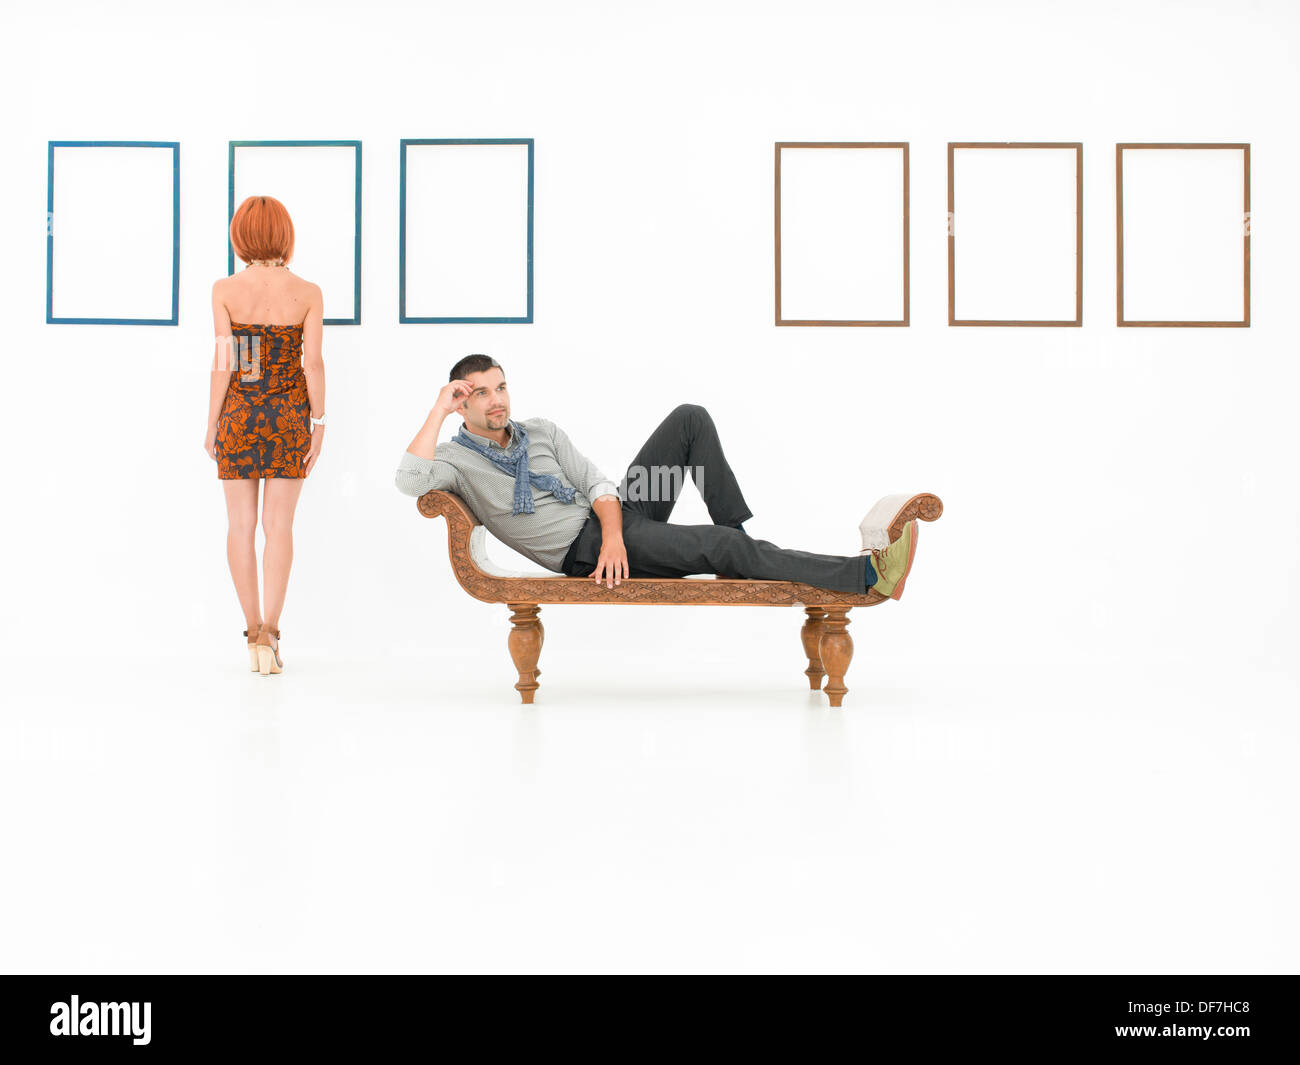 two young caucasian people in a white room with empty frames displayed on walls - Stock Image